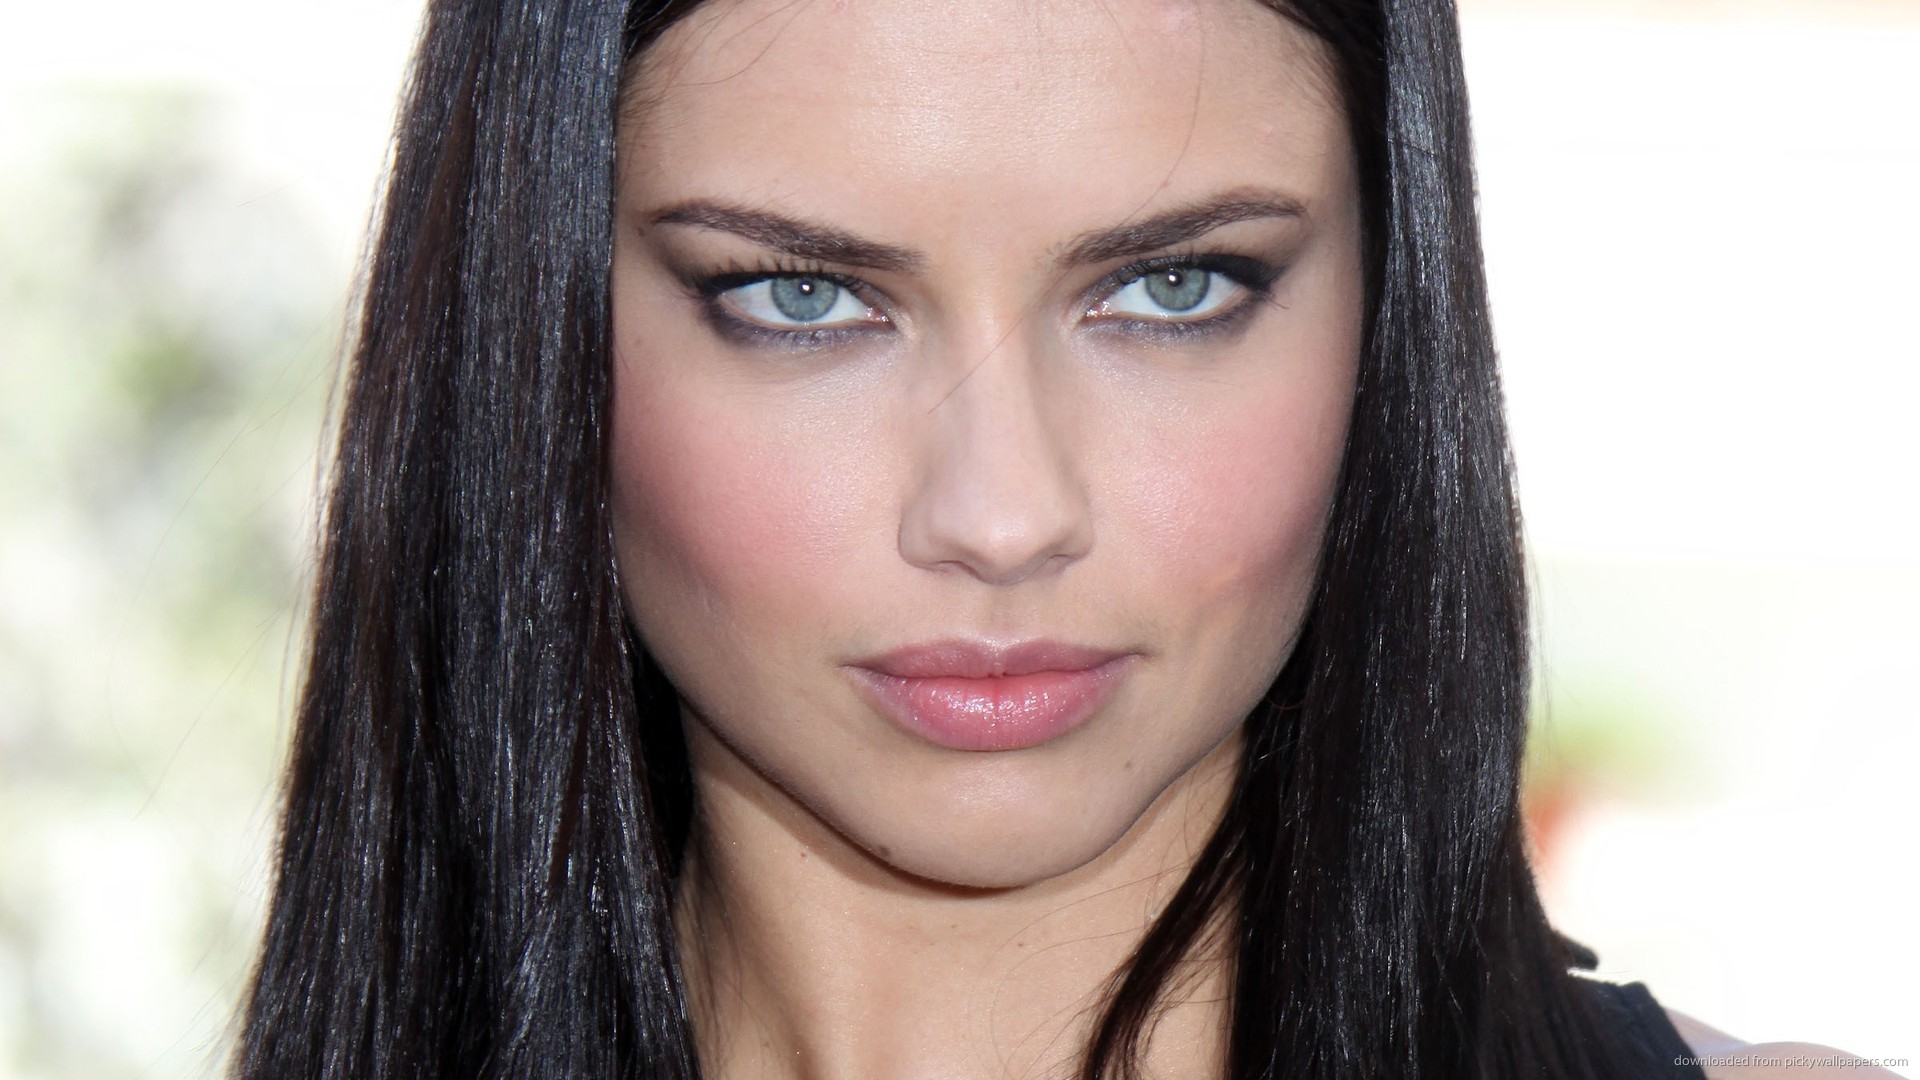 Adriana lima wallpaper hd wallpapermonkey adriana lima hd wallpaper adriana lima wallpaper hd wallpapermonkey adriana lima hd wallpaper cloudpix 1920x1080 voltagebd